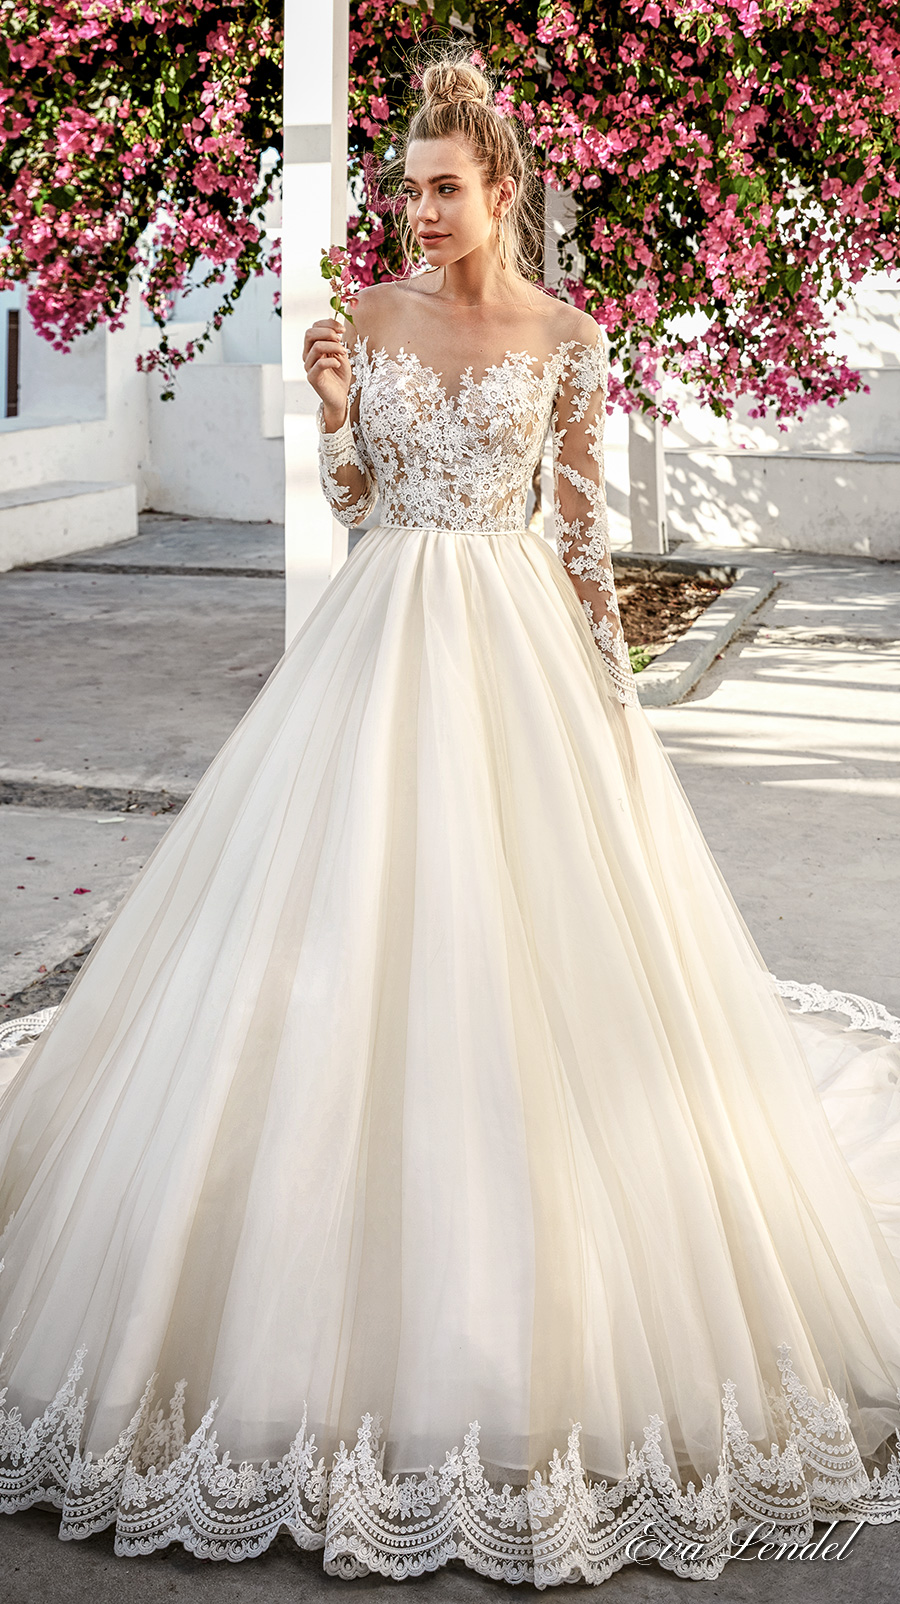 eva lendel 2017 bridal long sleeves off the shoulder sweetheart neckline heavily embellished bodice romantic princess a line wedding dress sheer back royal train (paige) mv